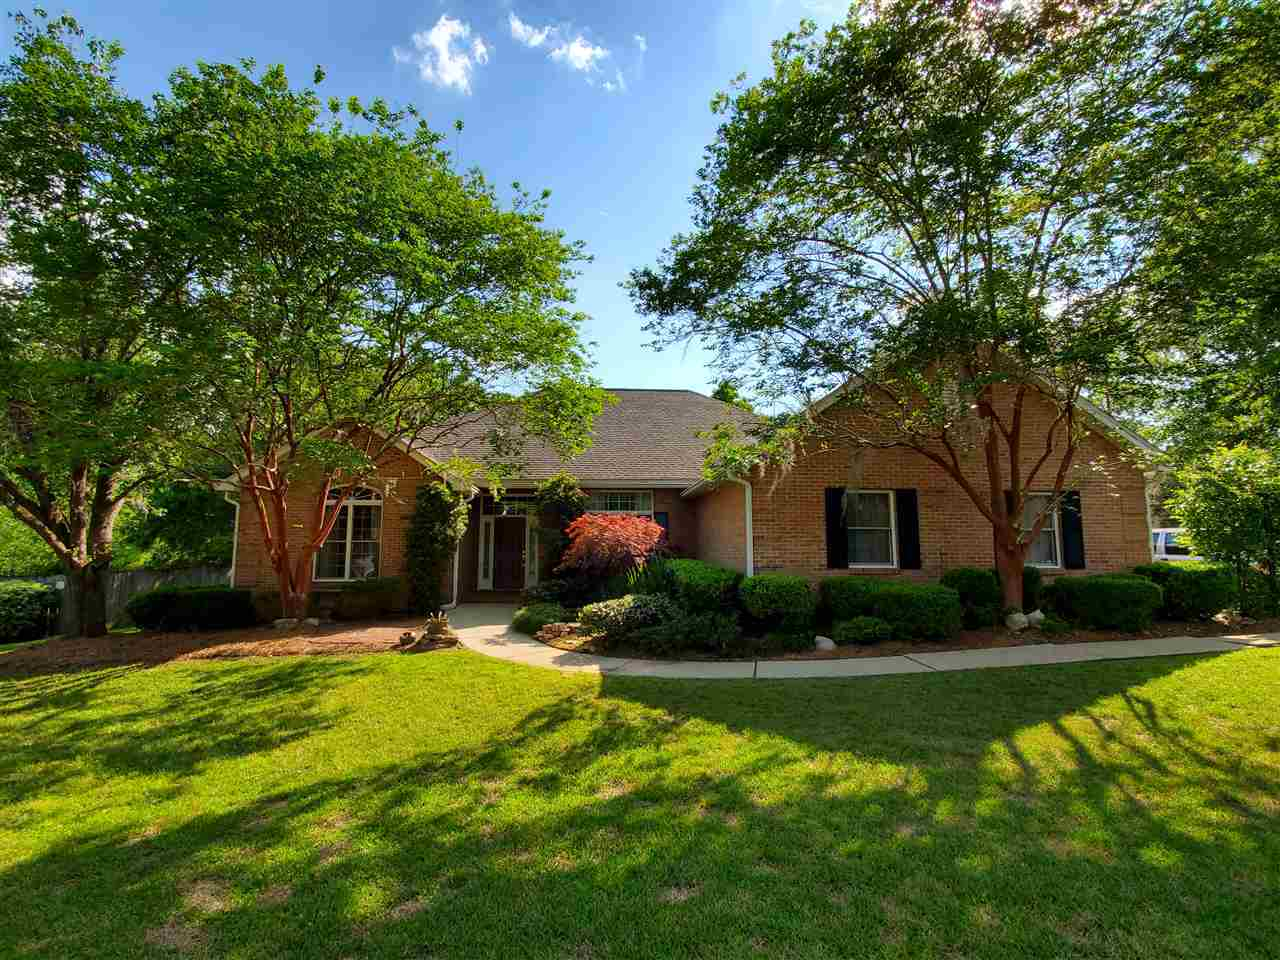 $379,000 - 4Br/3Ba -  for Sale in Ox Bottom Manor, Tallahassee